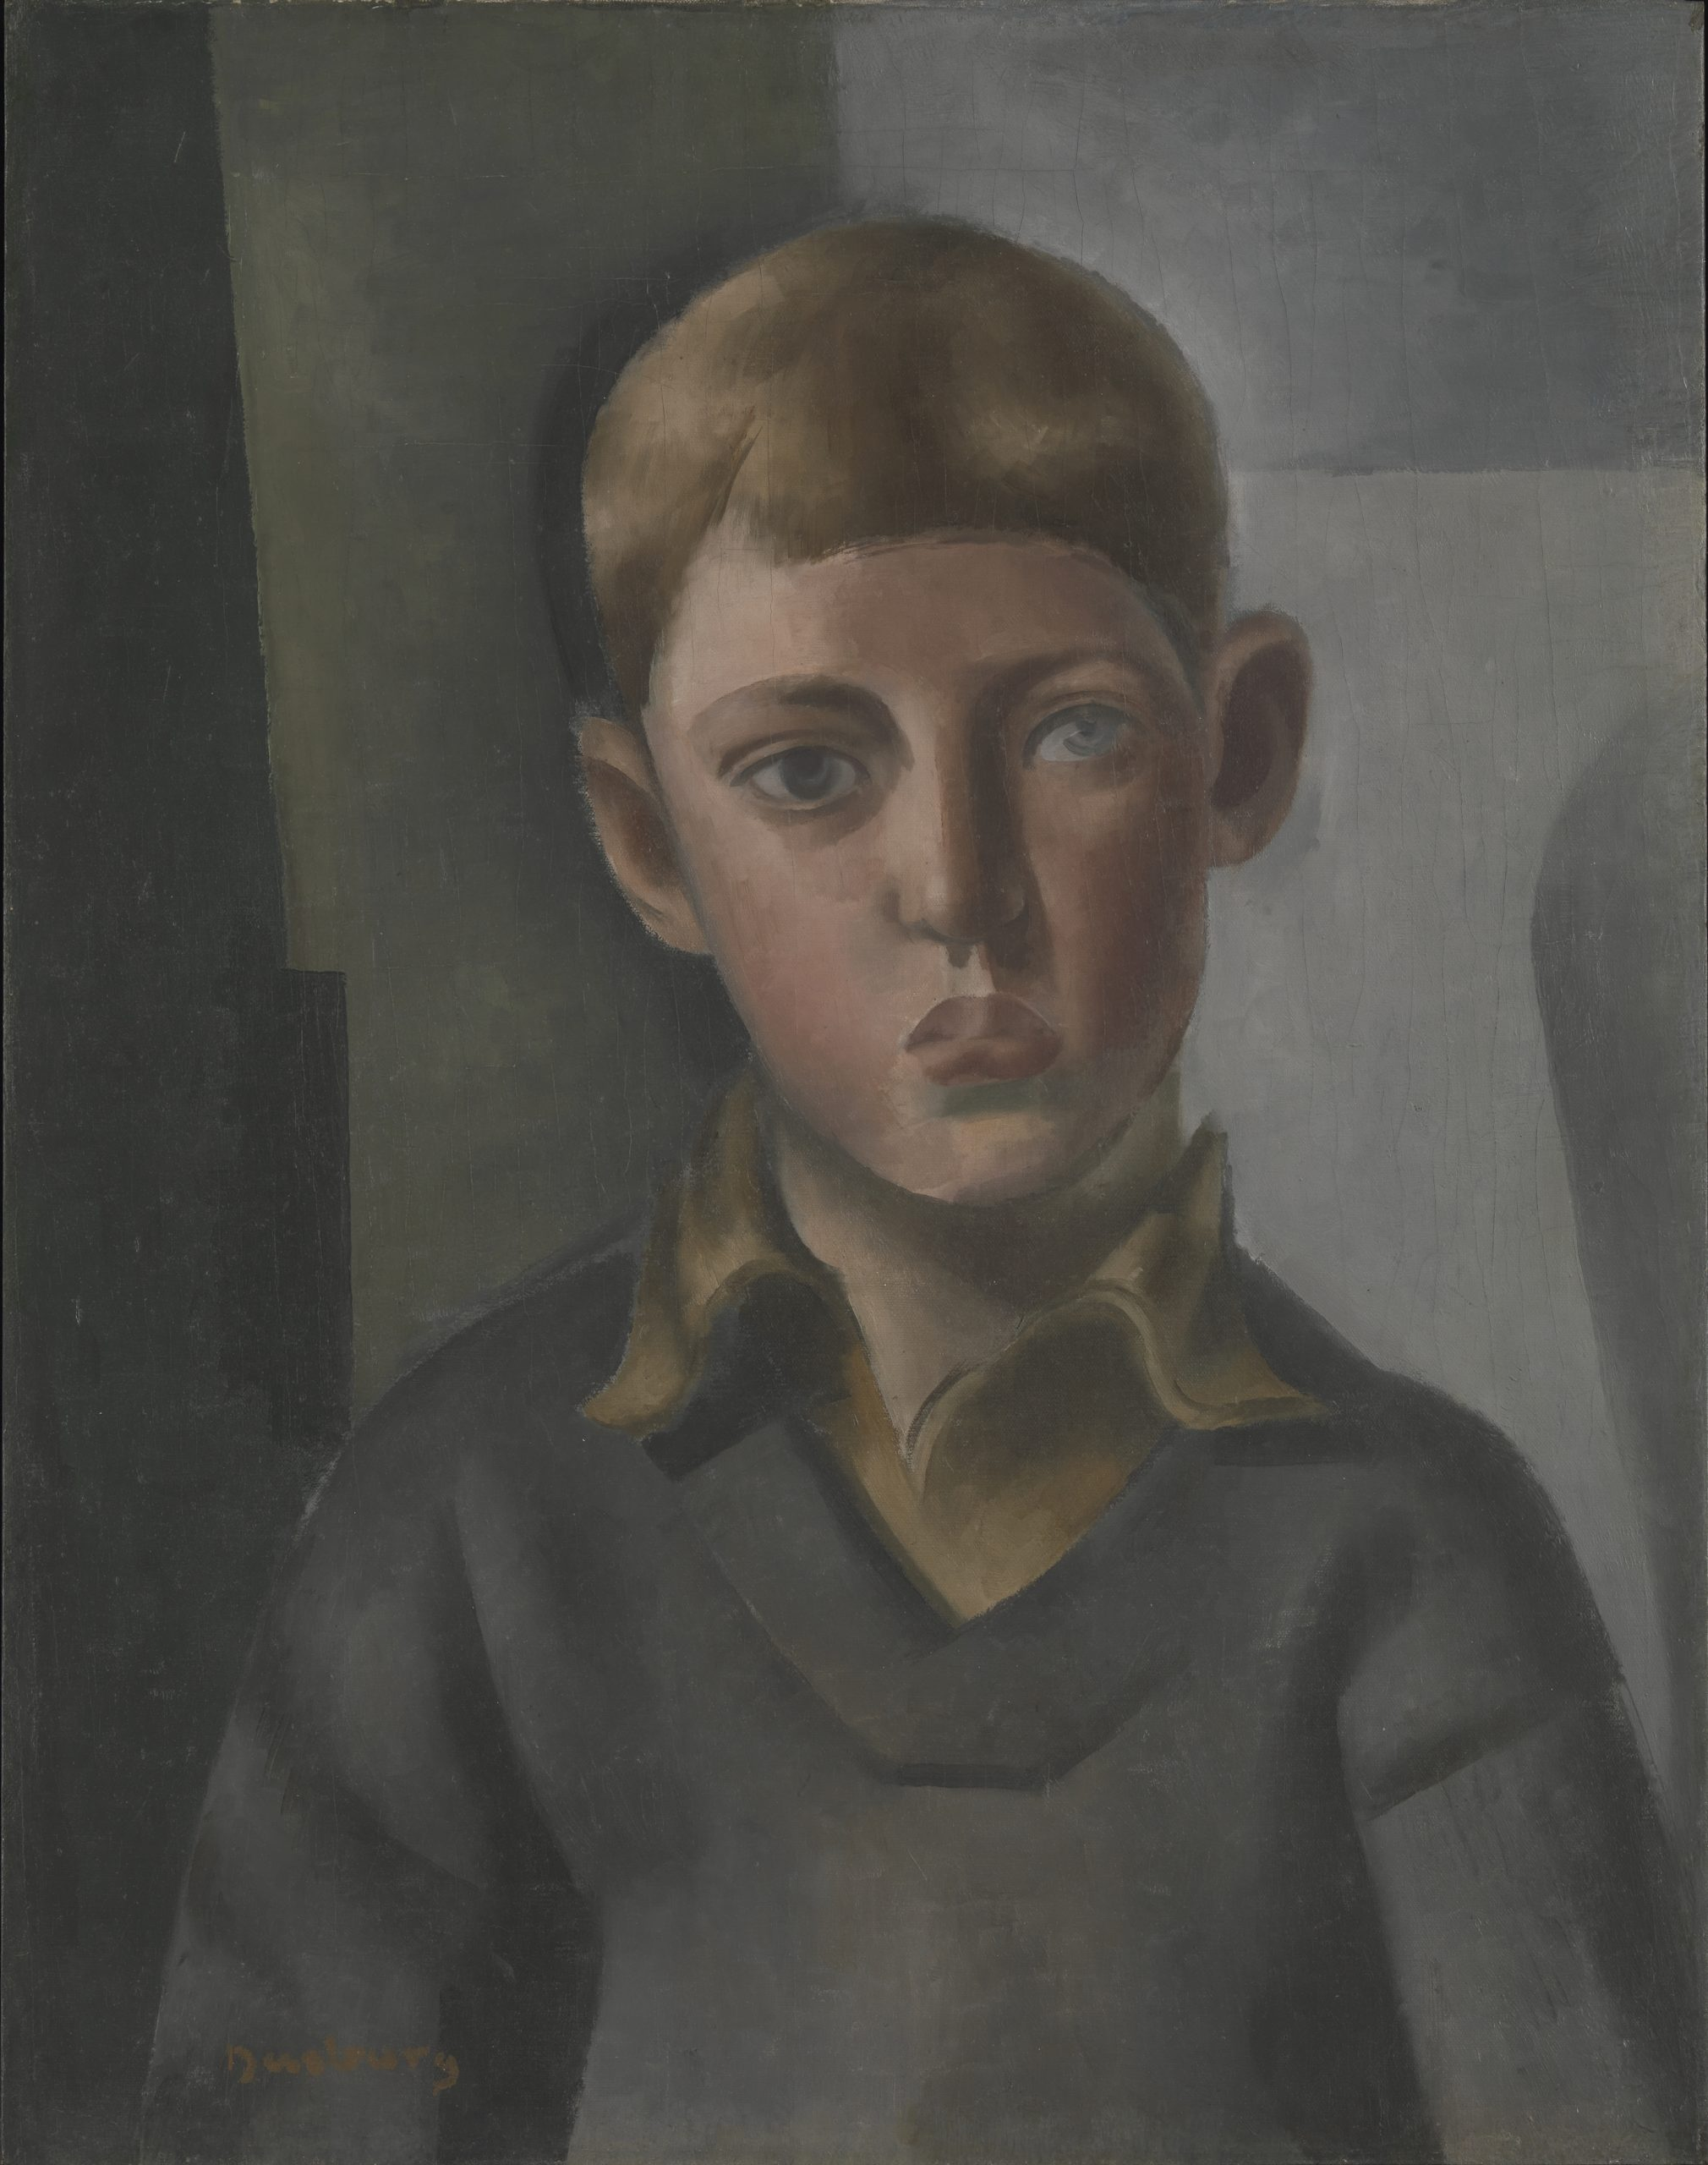 Painted portrait of a young blonde boy staring pensively off into the distance.